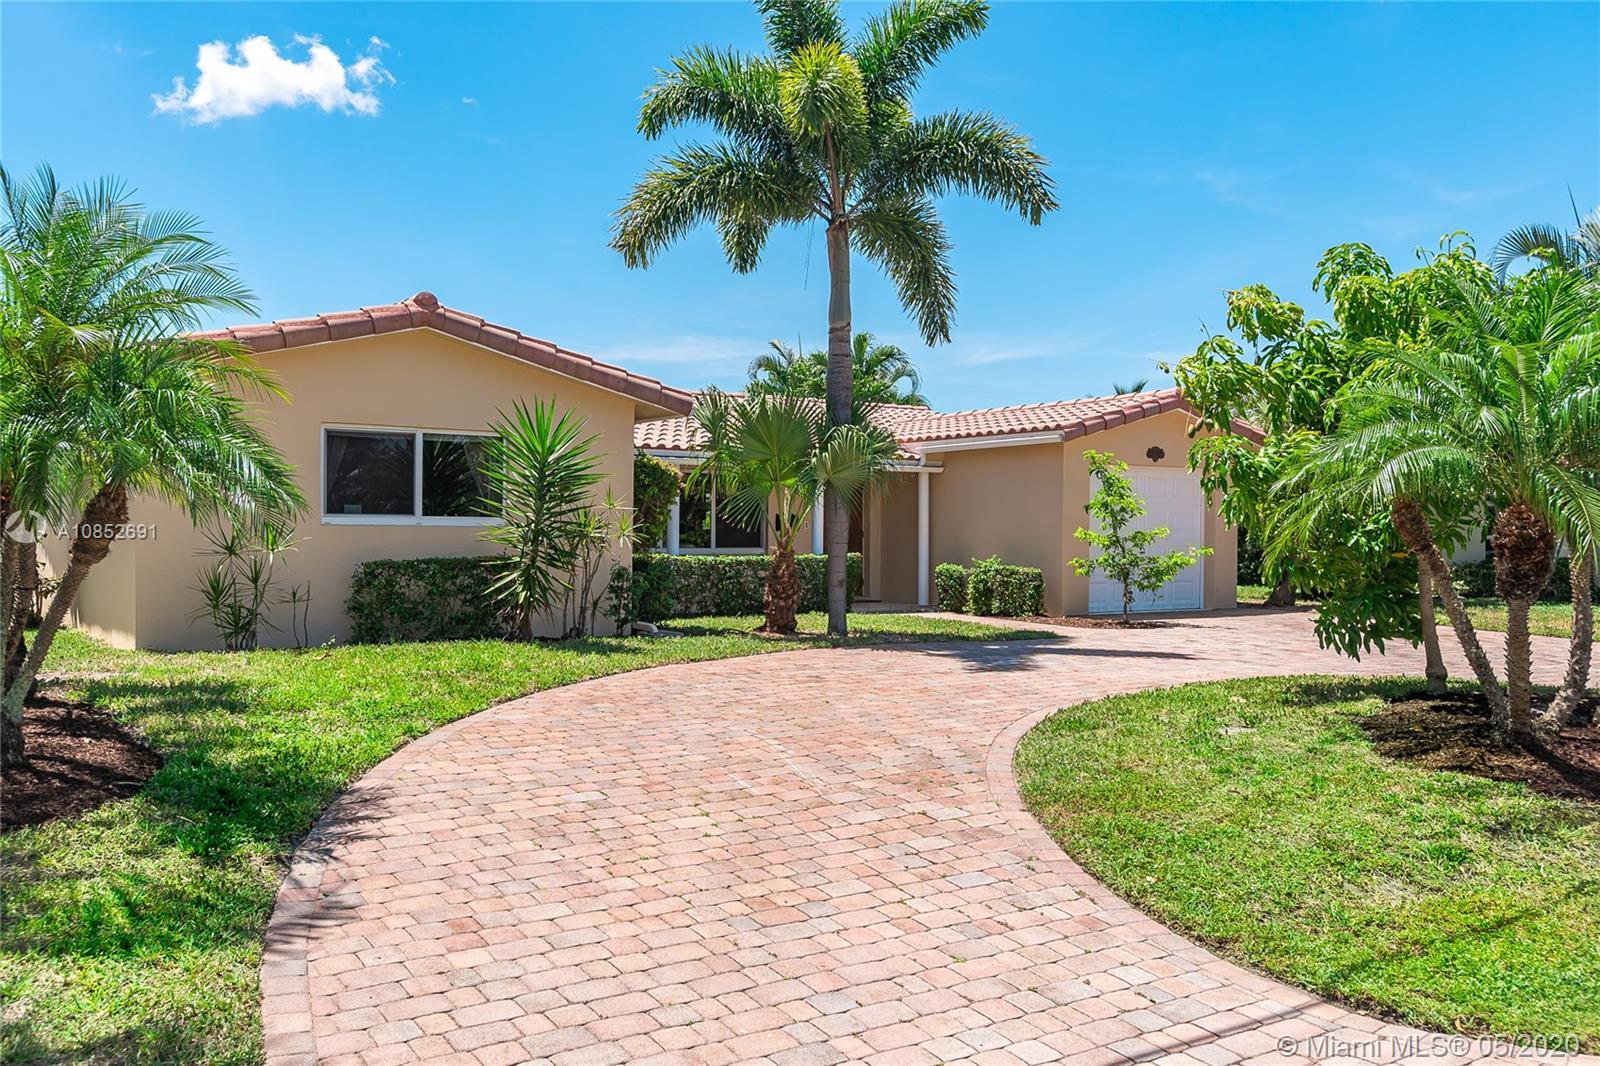 Turnkey waterfront 3/2 home in desirable Coral Ridge Isles w/ ocean access.  Bonus room for 4th bedr